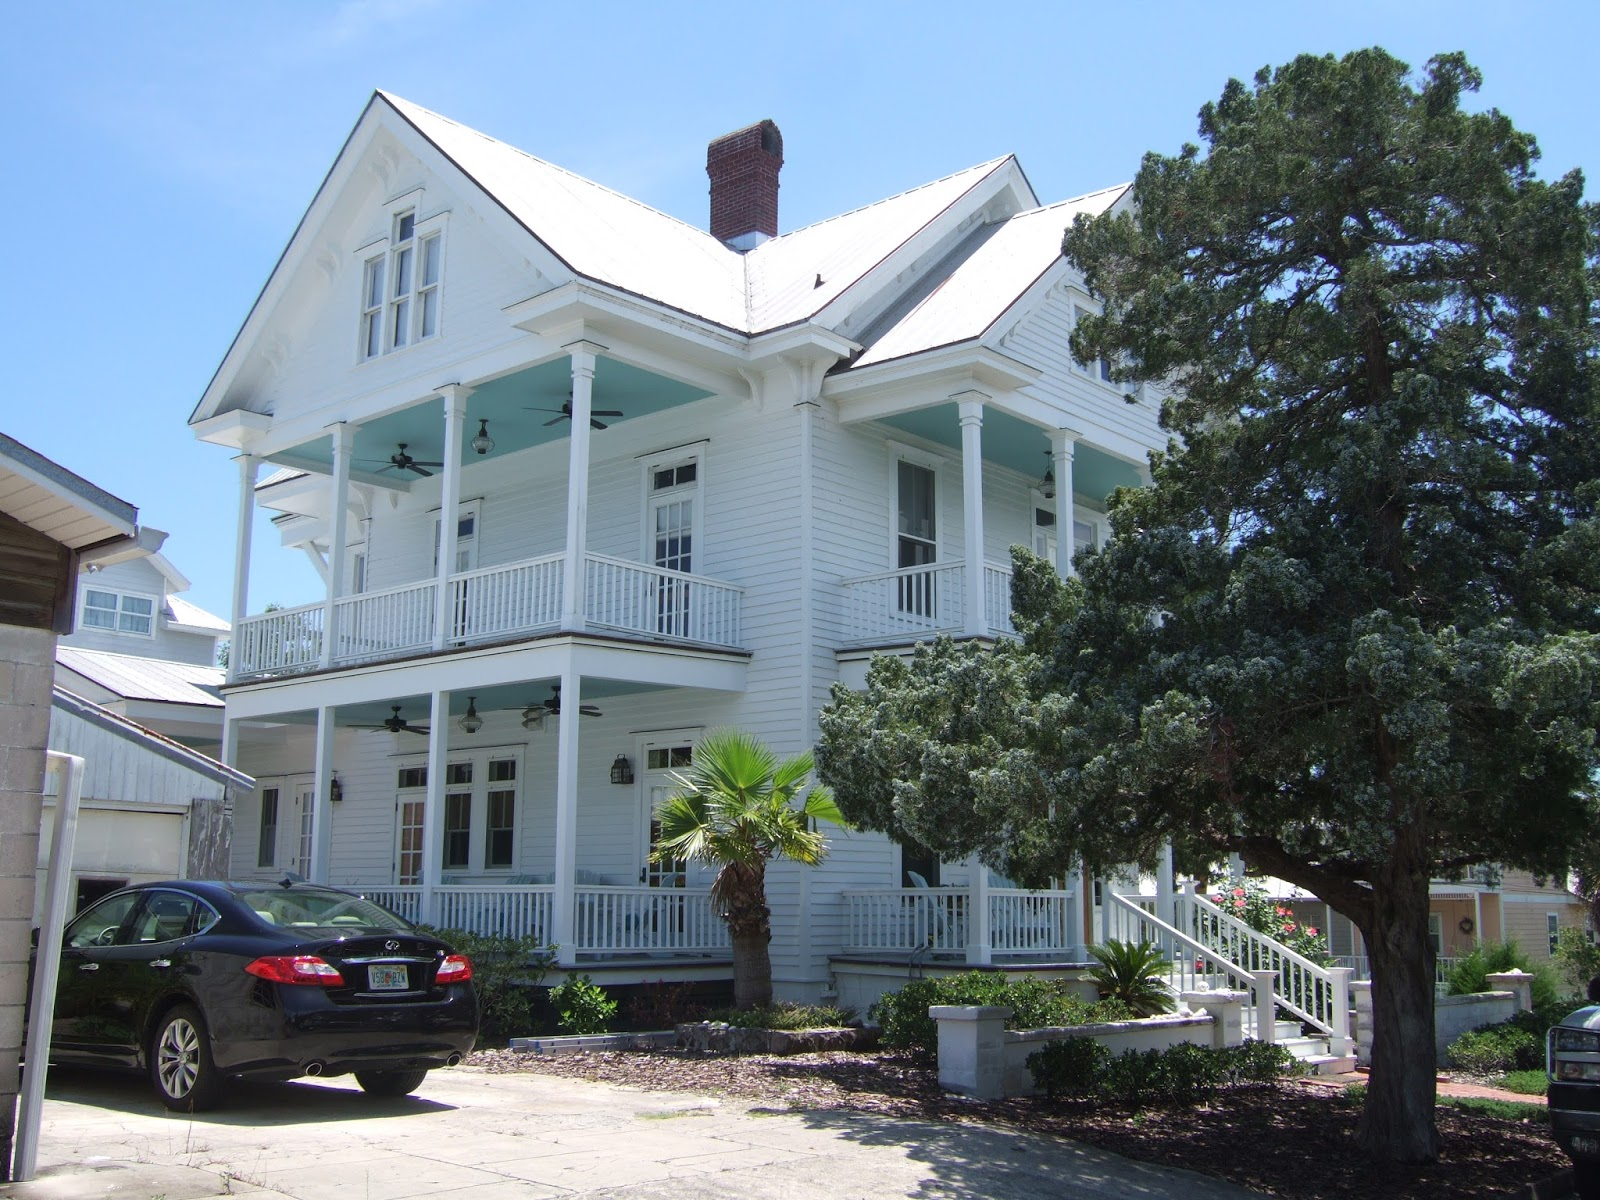 Admirable Easy Life Meal And Party Planning Cedar Key Old Florida Beauty Home Interior And Landscaping Ologienasavecom